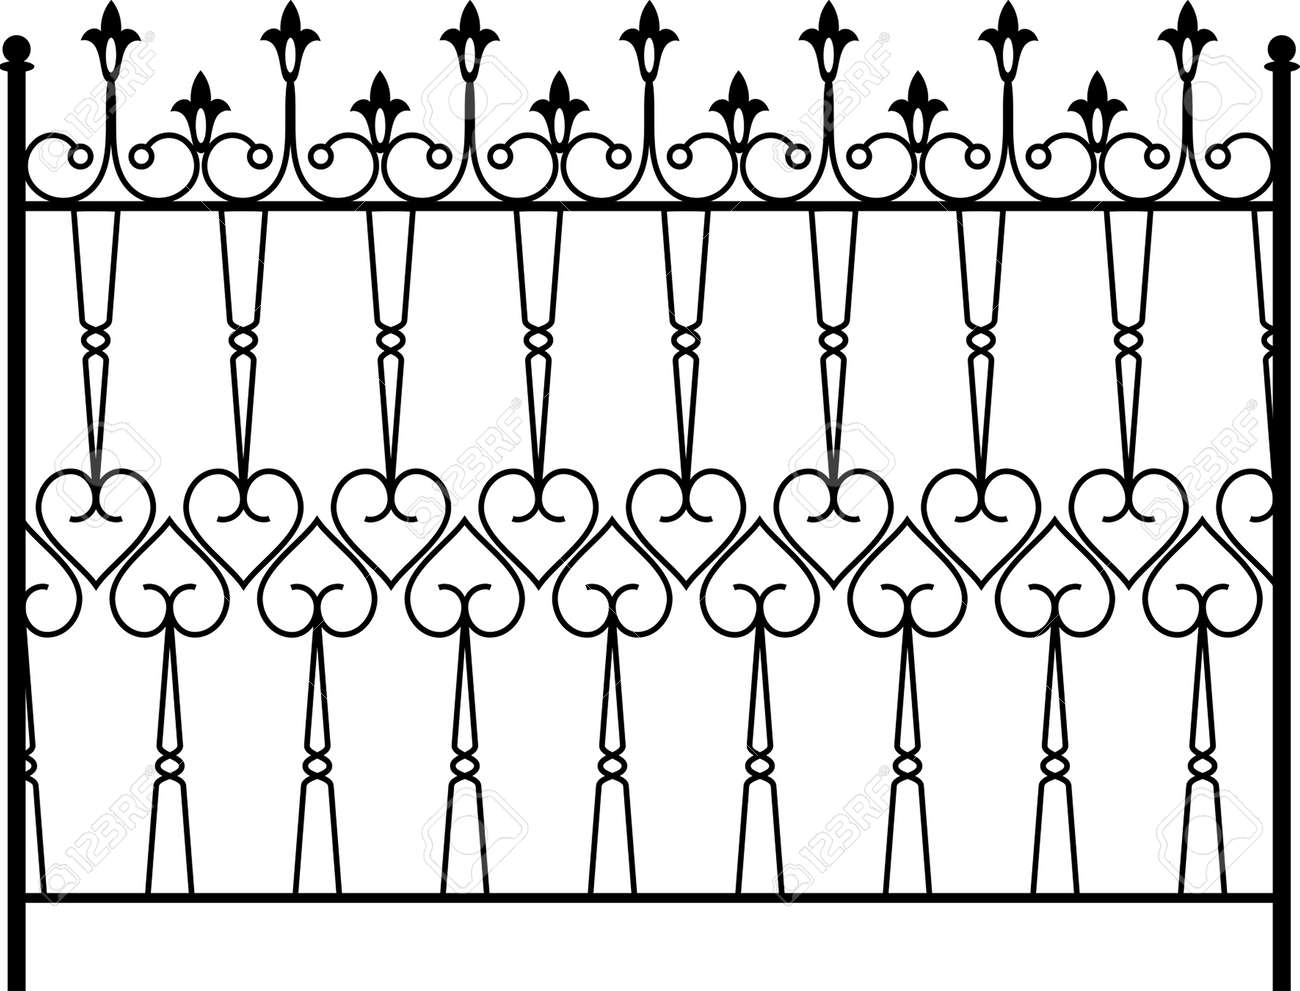 Wrought Iron Gate Door Fence Window Grill Railing Design Royalty Free Cliparts Vectors And Stock Illustration Image 46277267